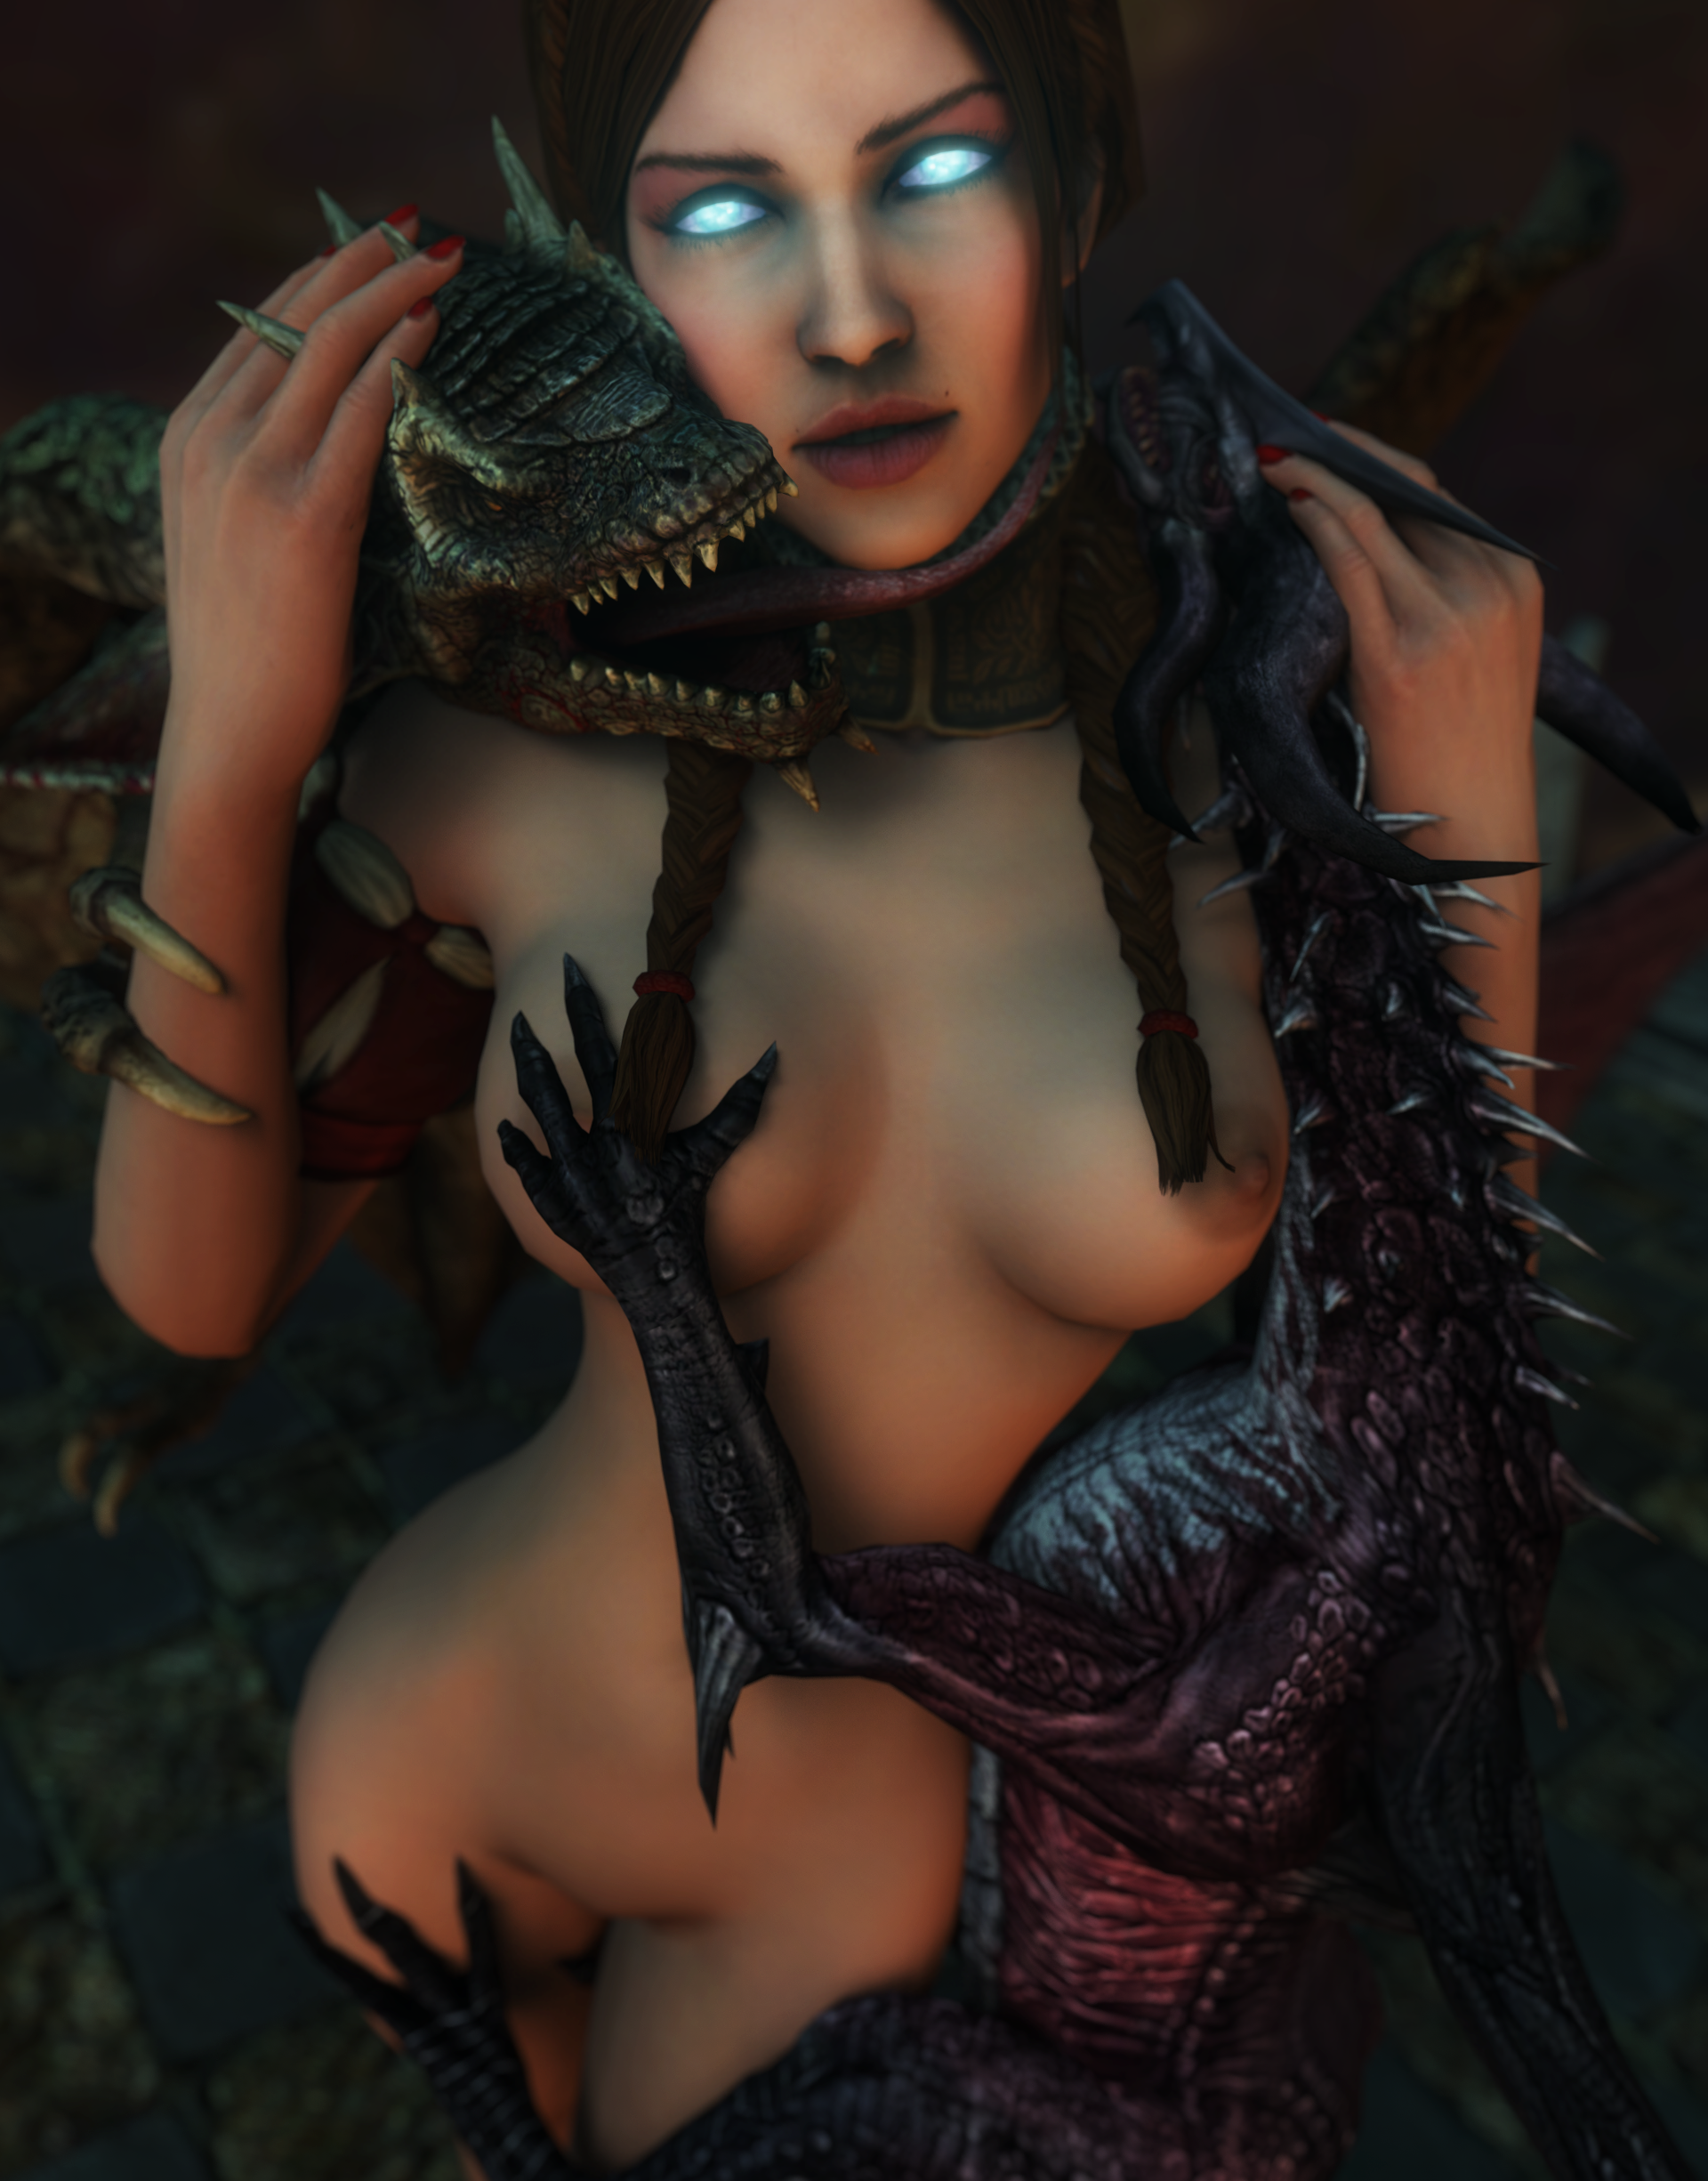 Dragon age naked erotic erotic sexy image